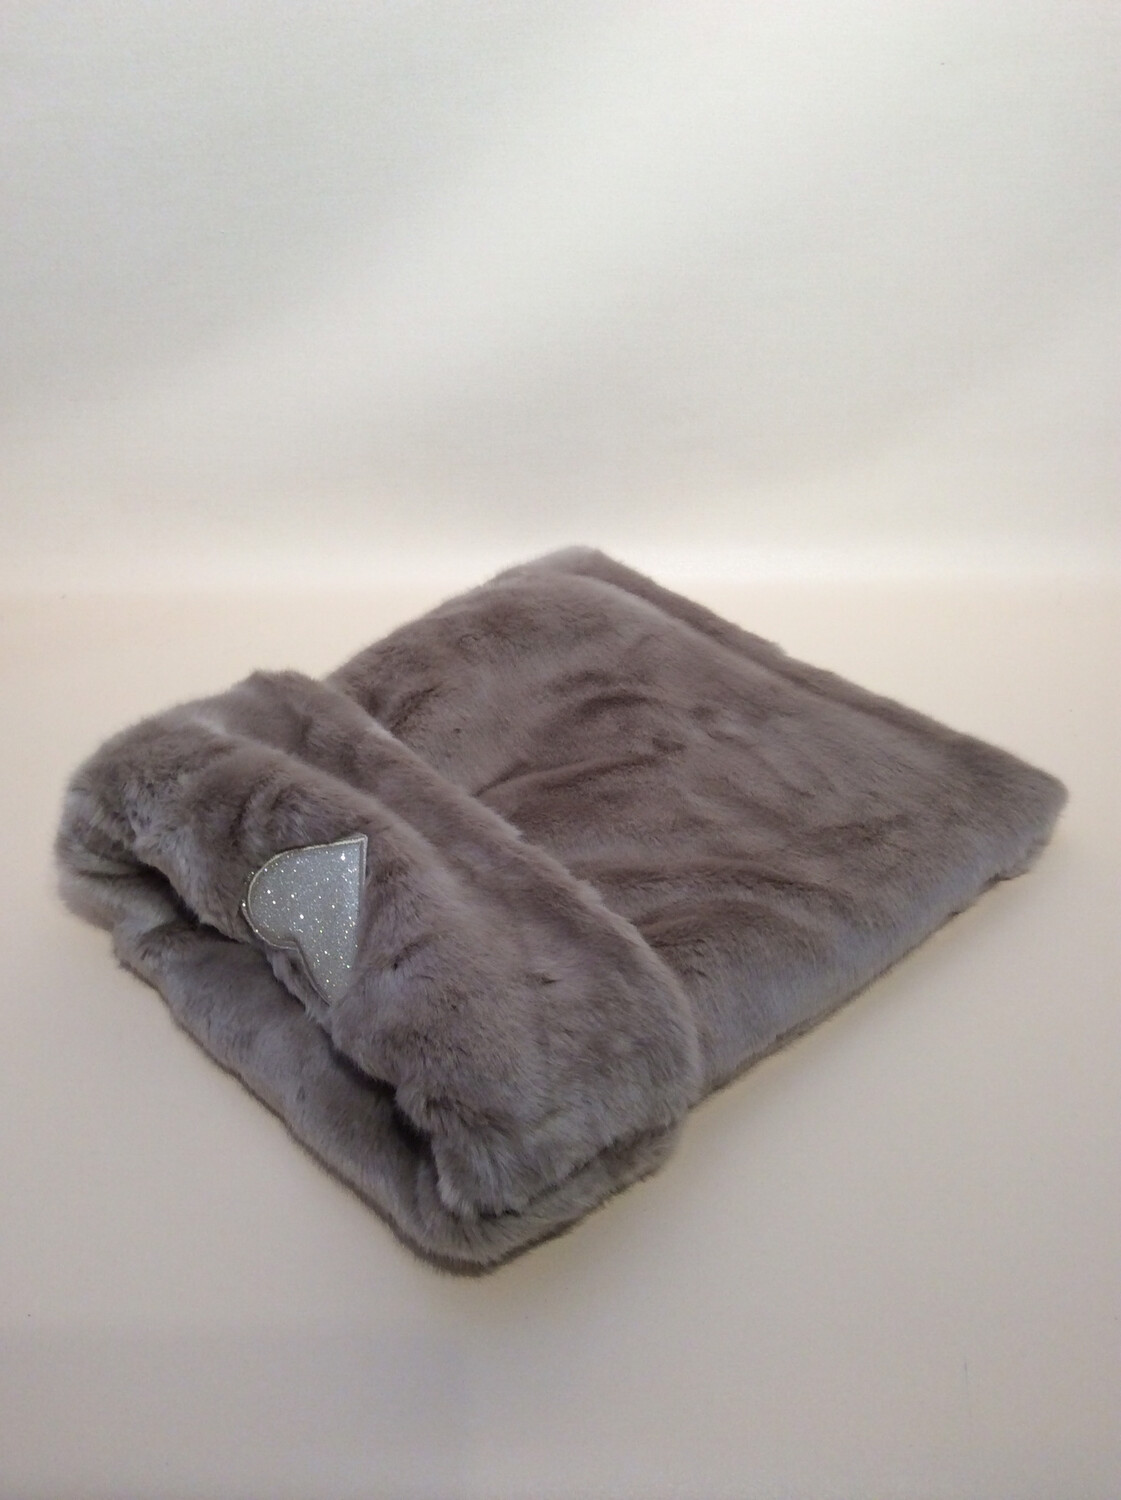 Luxury sleeping bag 50x36